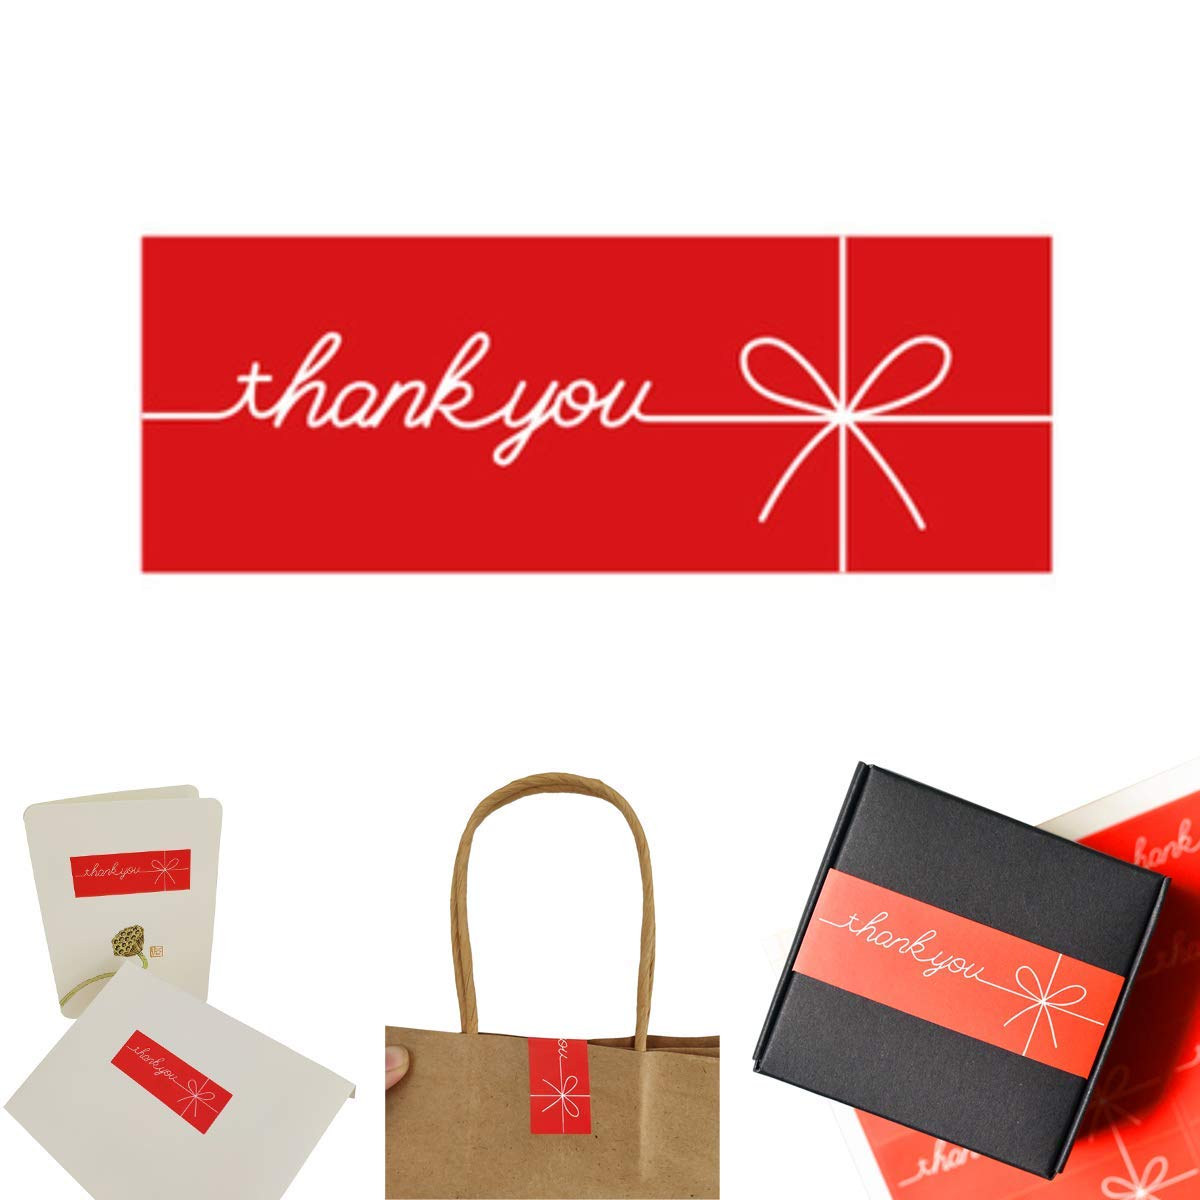 300Pack Thank You Stickers,Red,Rectangular,Bowknot,Decorative Sealing Adhesive Labels Sticker for Customizable Team Gifts,Boutique Supplies,Wedding,Party,Small Business Boutique Bags,Company Giveaway